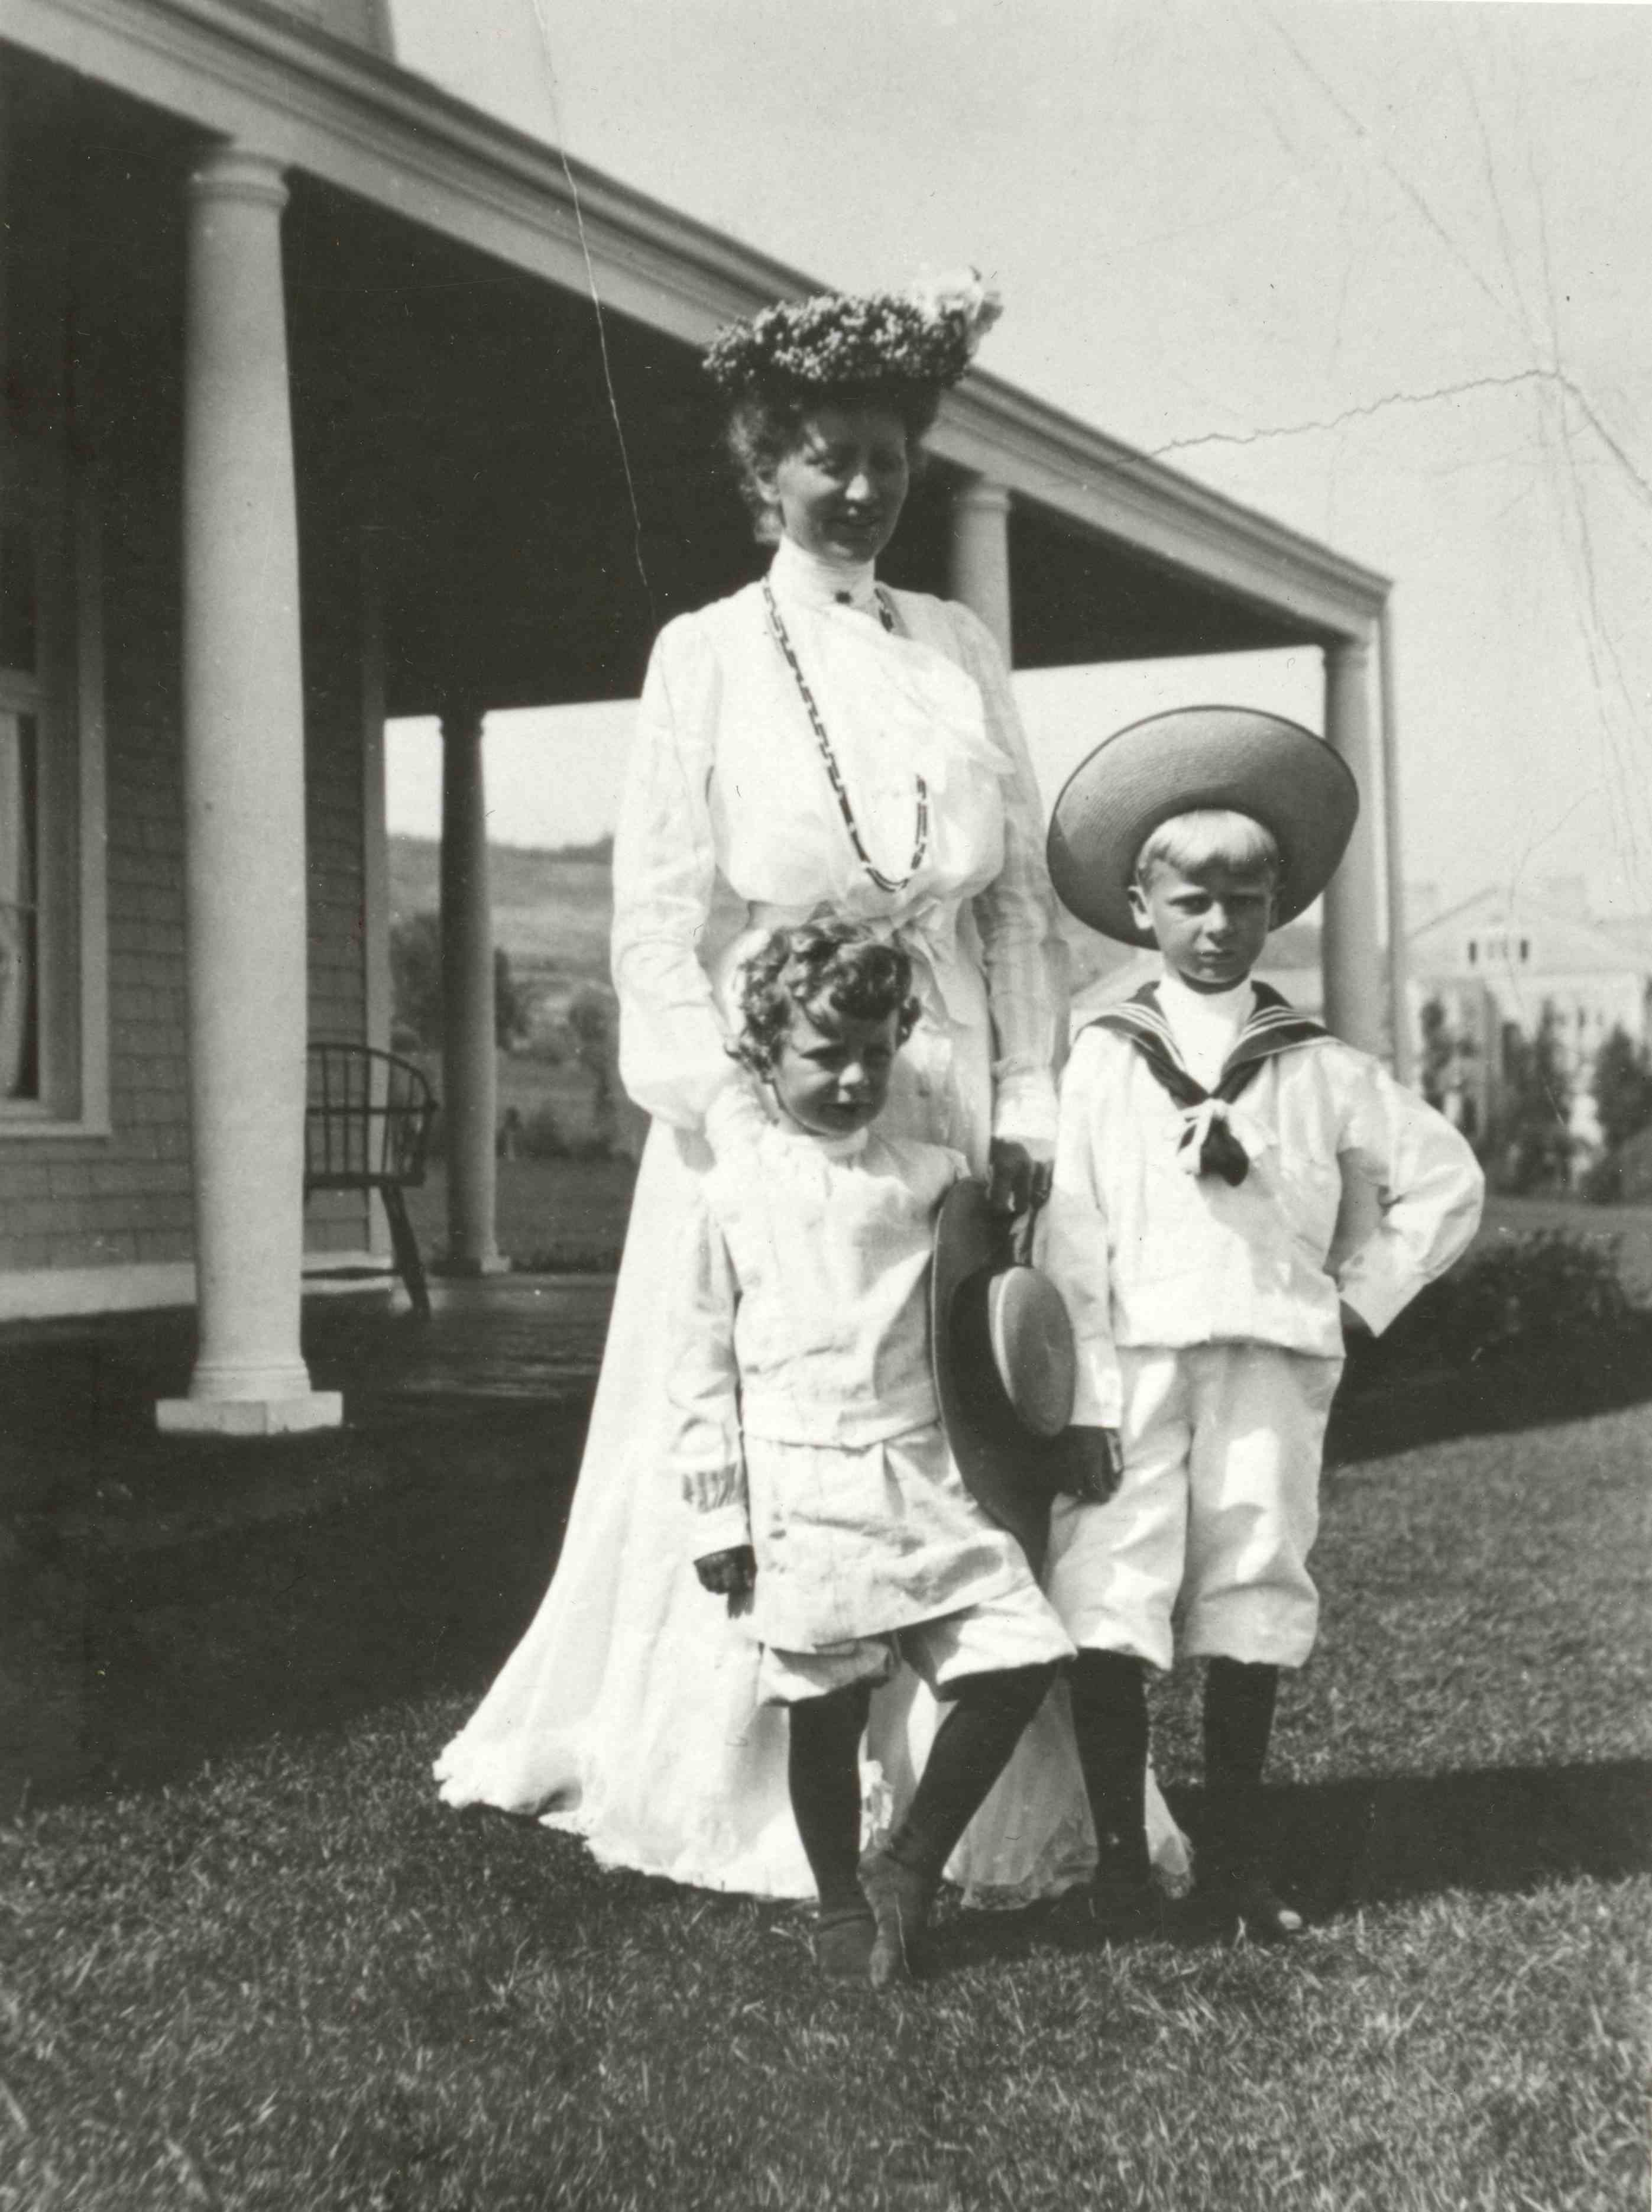 A woman in a very elegant white dress posing with her two children near a house.